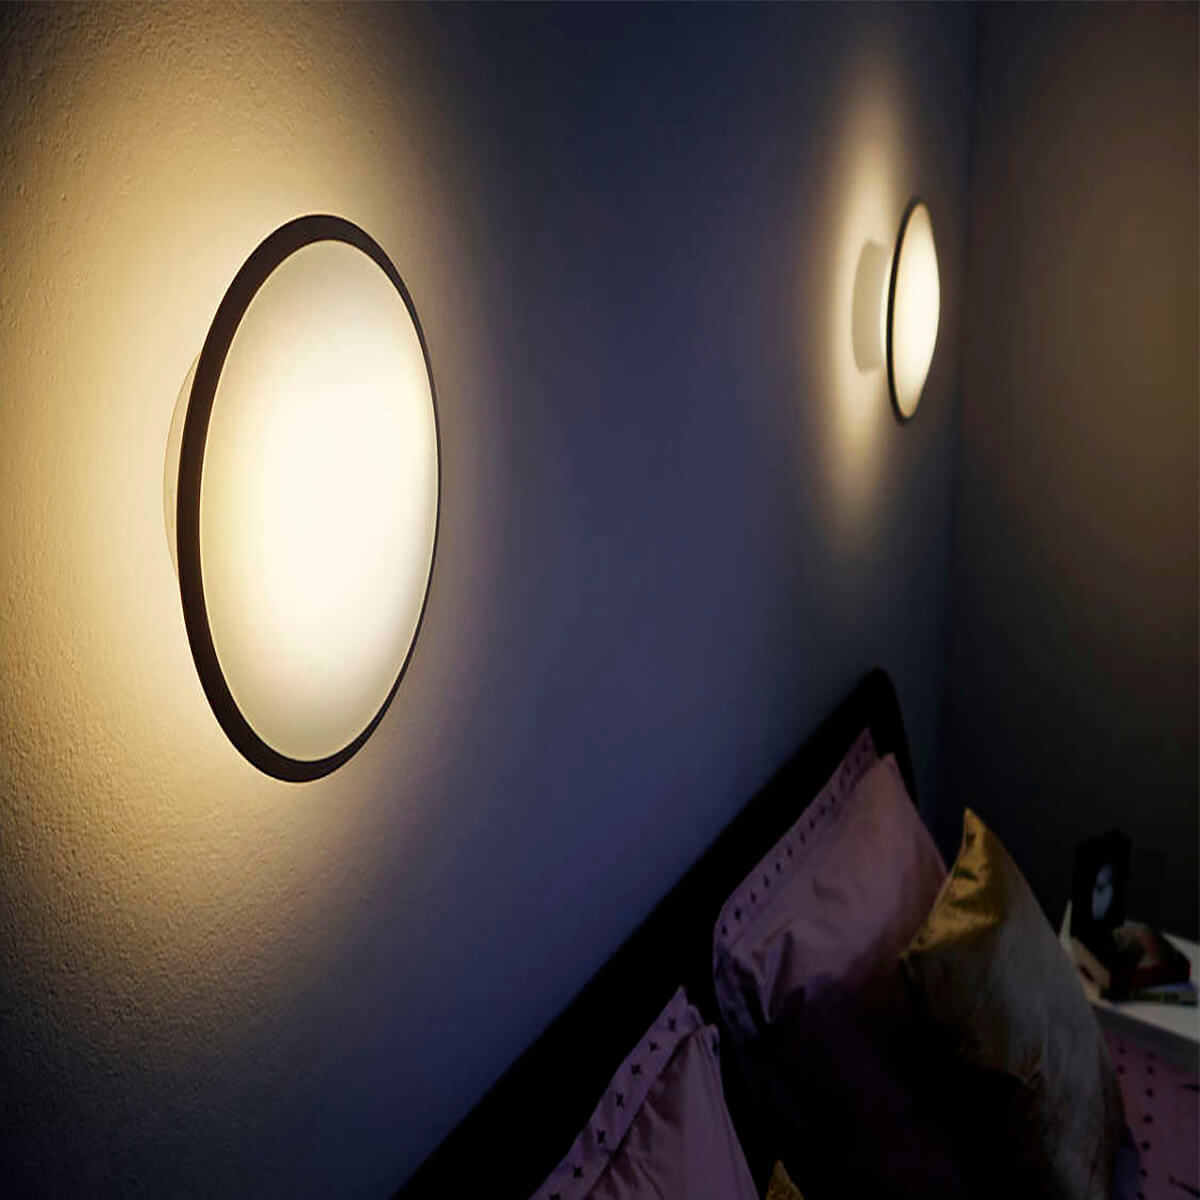 Смарт-светильник PHILIPS Phoenix wall lamp white (31153/31/PH)